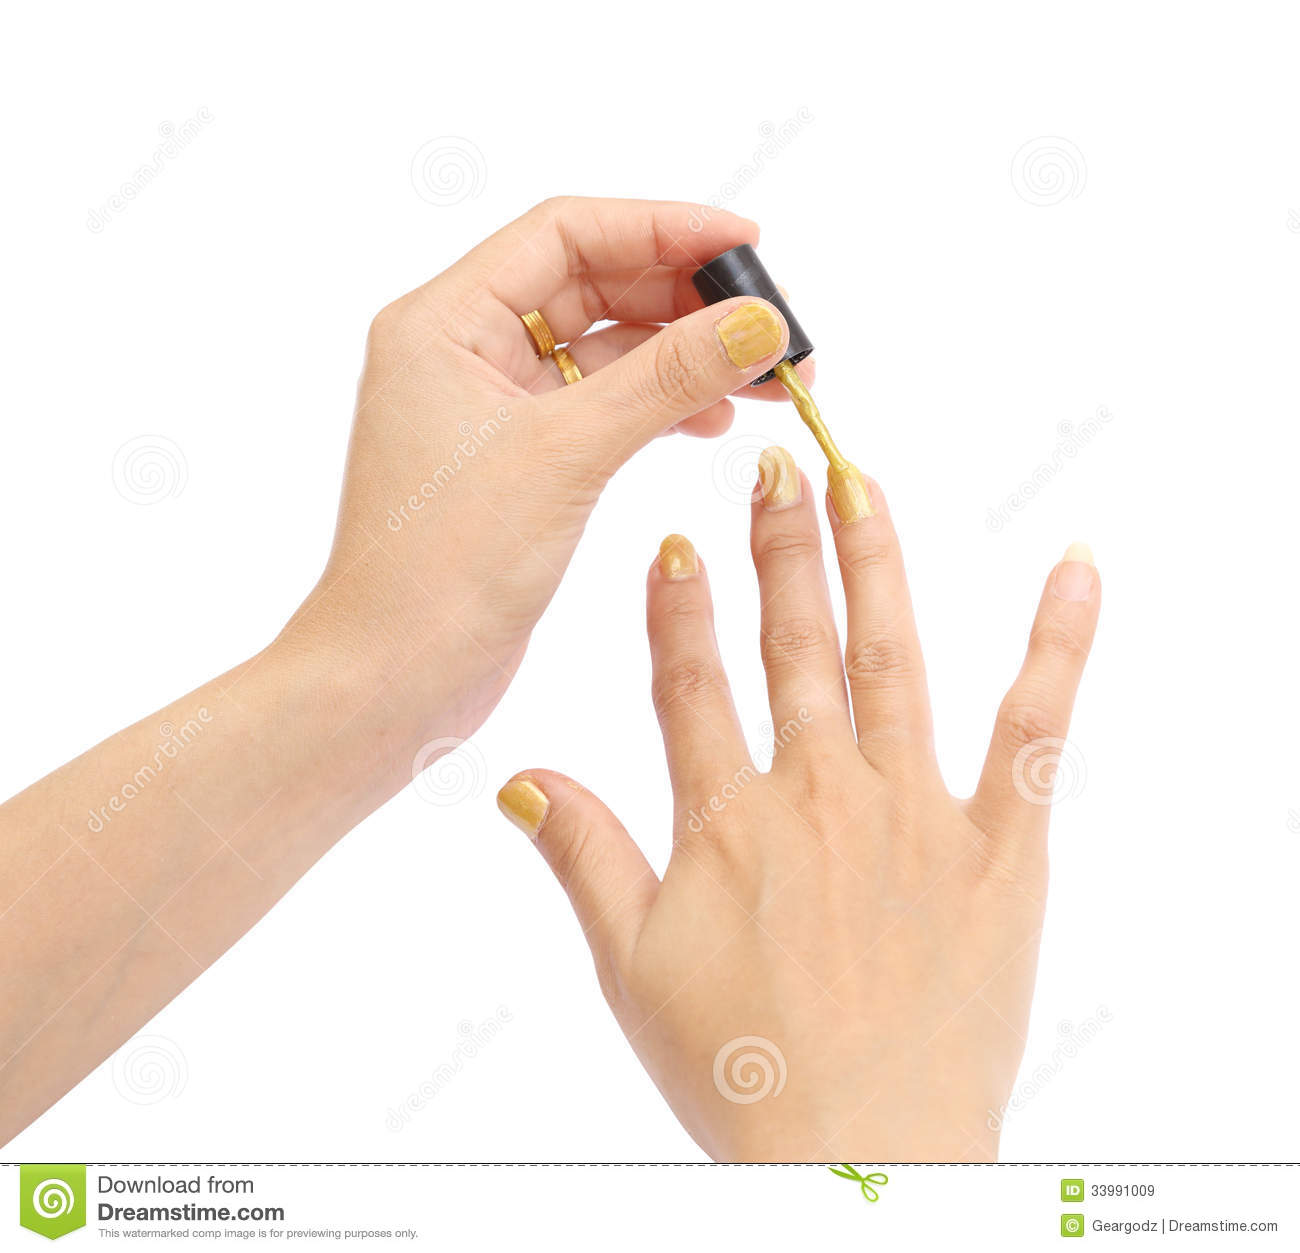 Nail Polish Colors For Younger Looking Hands: Female Hand With A Golden Nail Polish On White Background